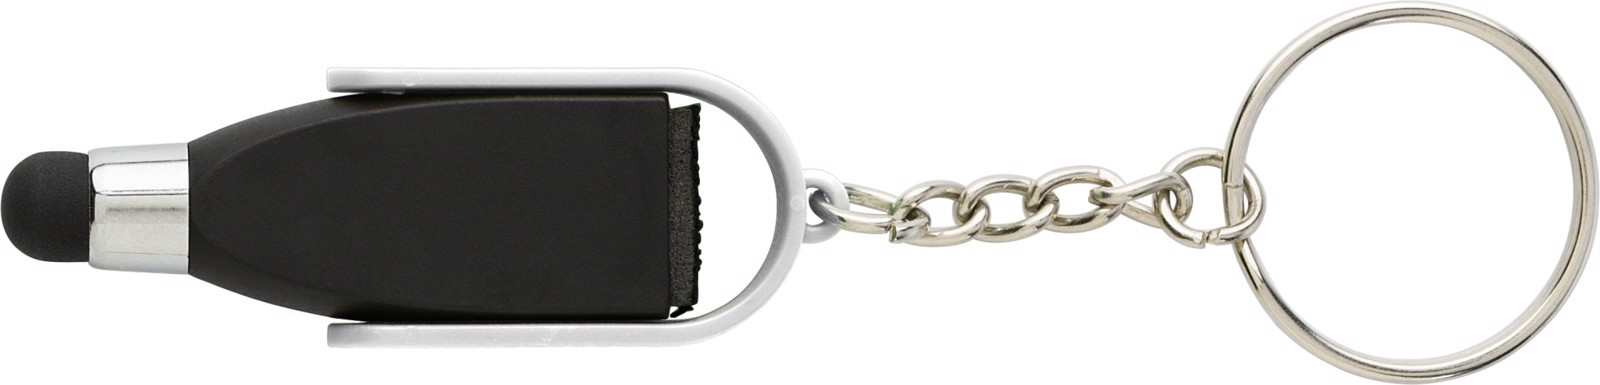 ABS key chain with tip for capacitive screens - White